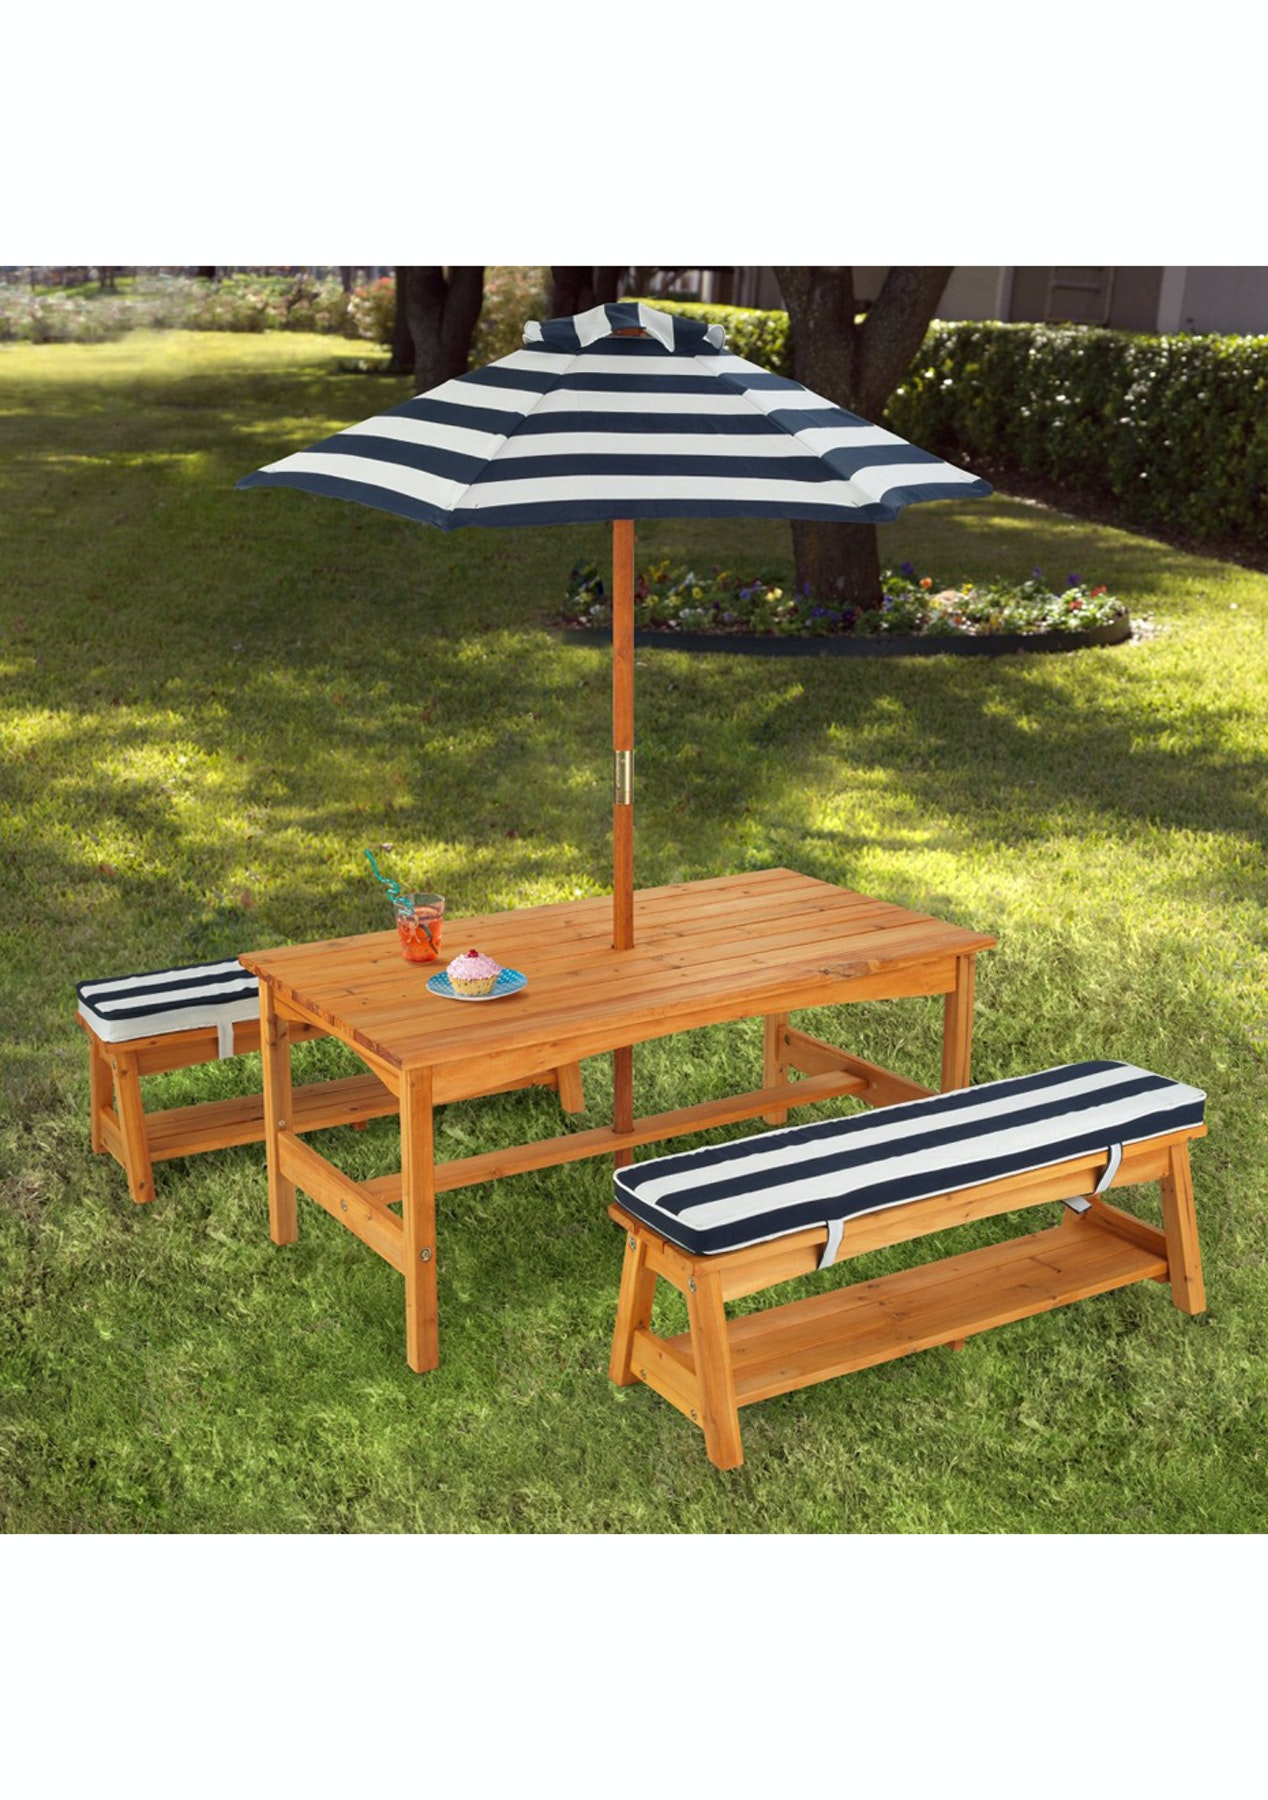 Childrens Outdoor Picnic Table And Bench Seat With Umbrella Gifts